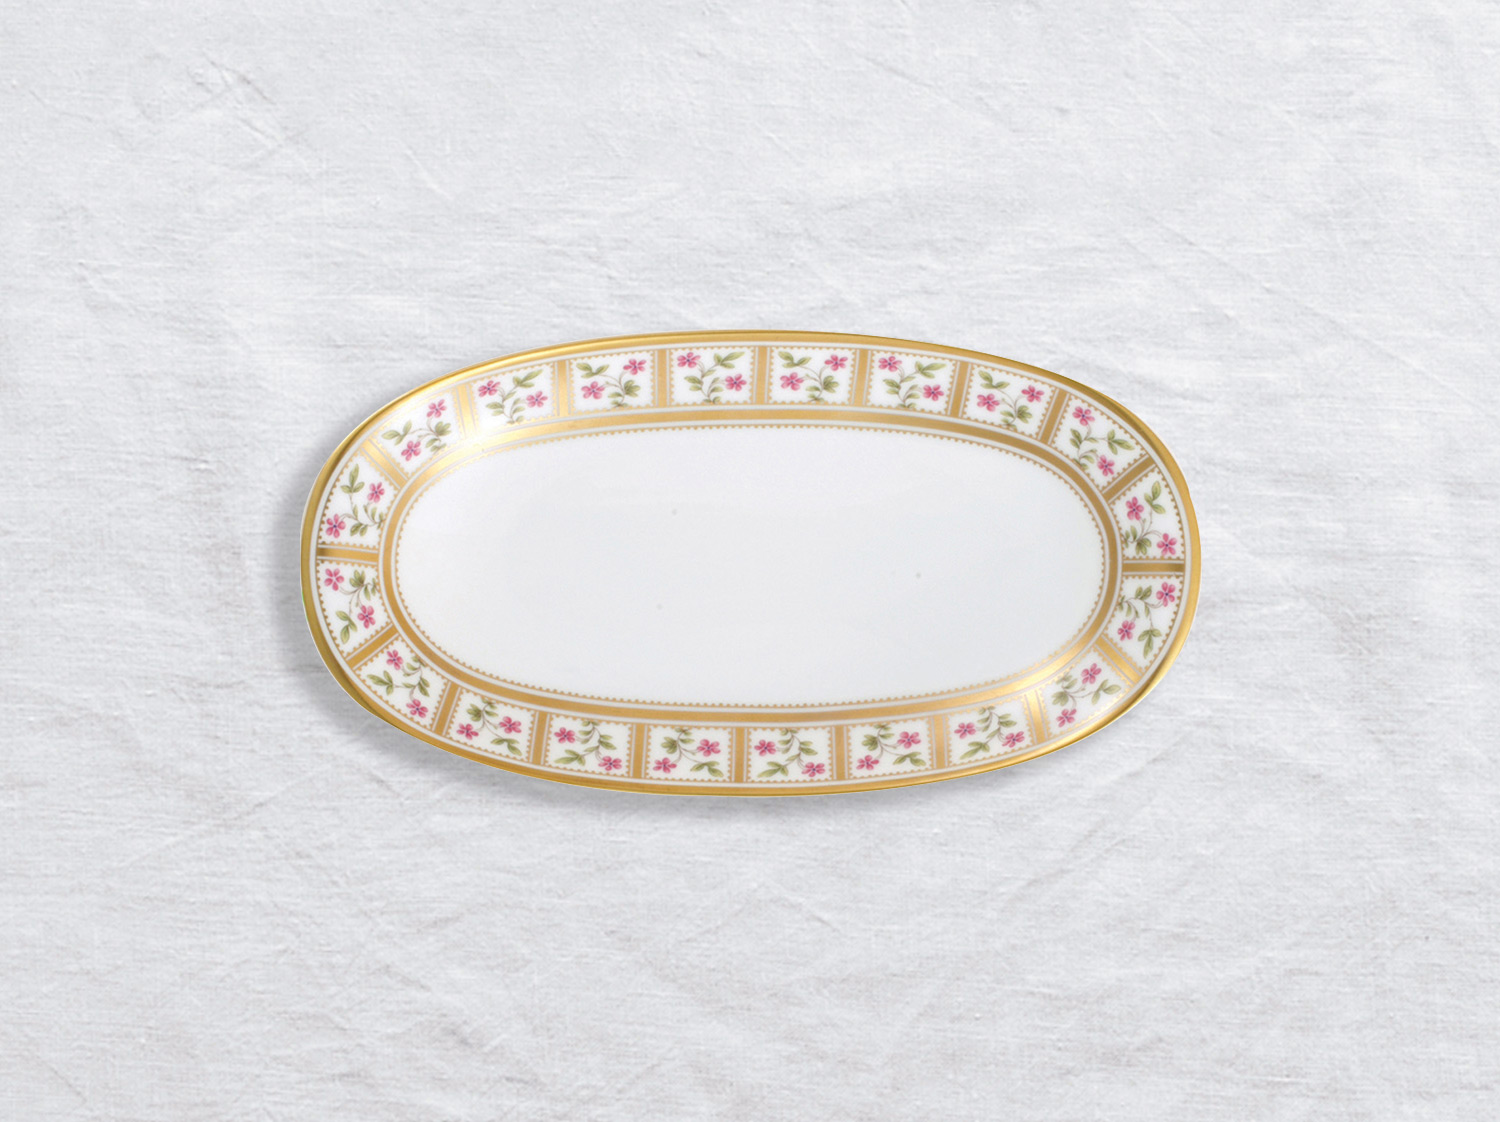 Ravier 21 x 15 cm en porcelaine de la collection Roseraie Bernardaud